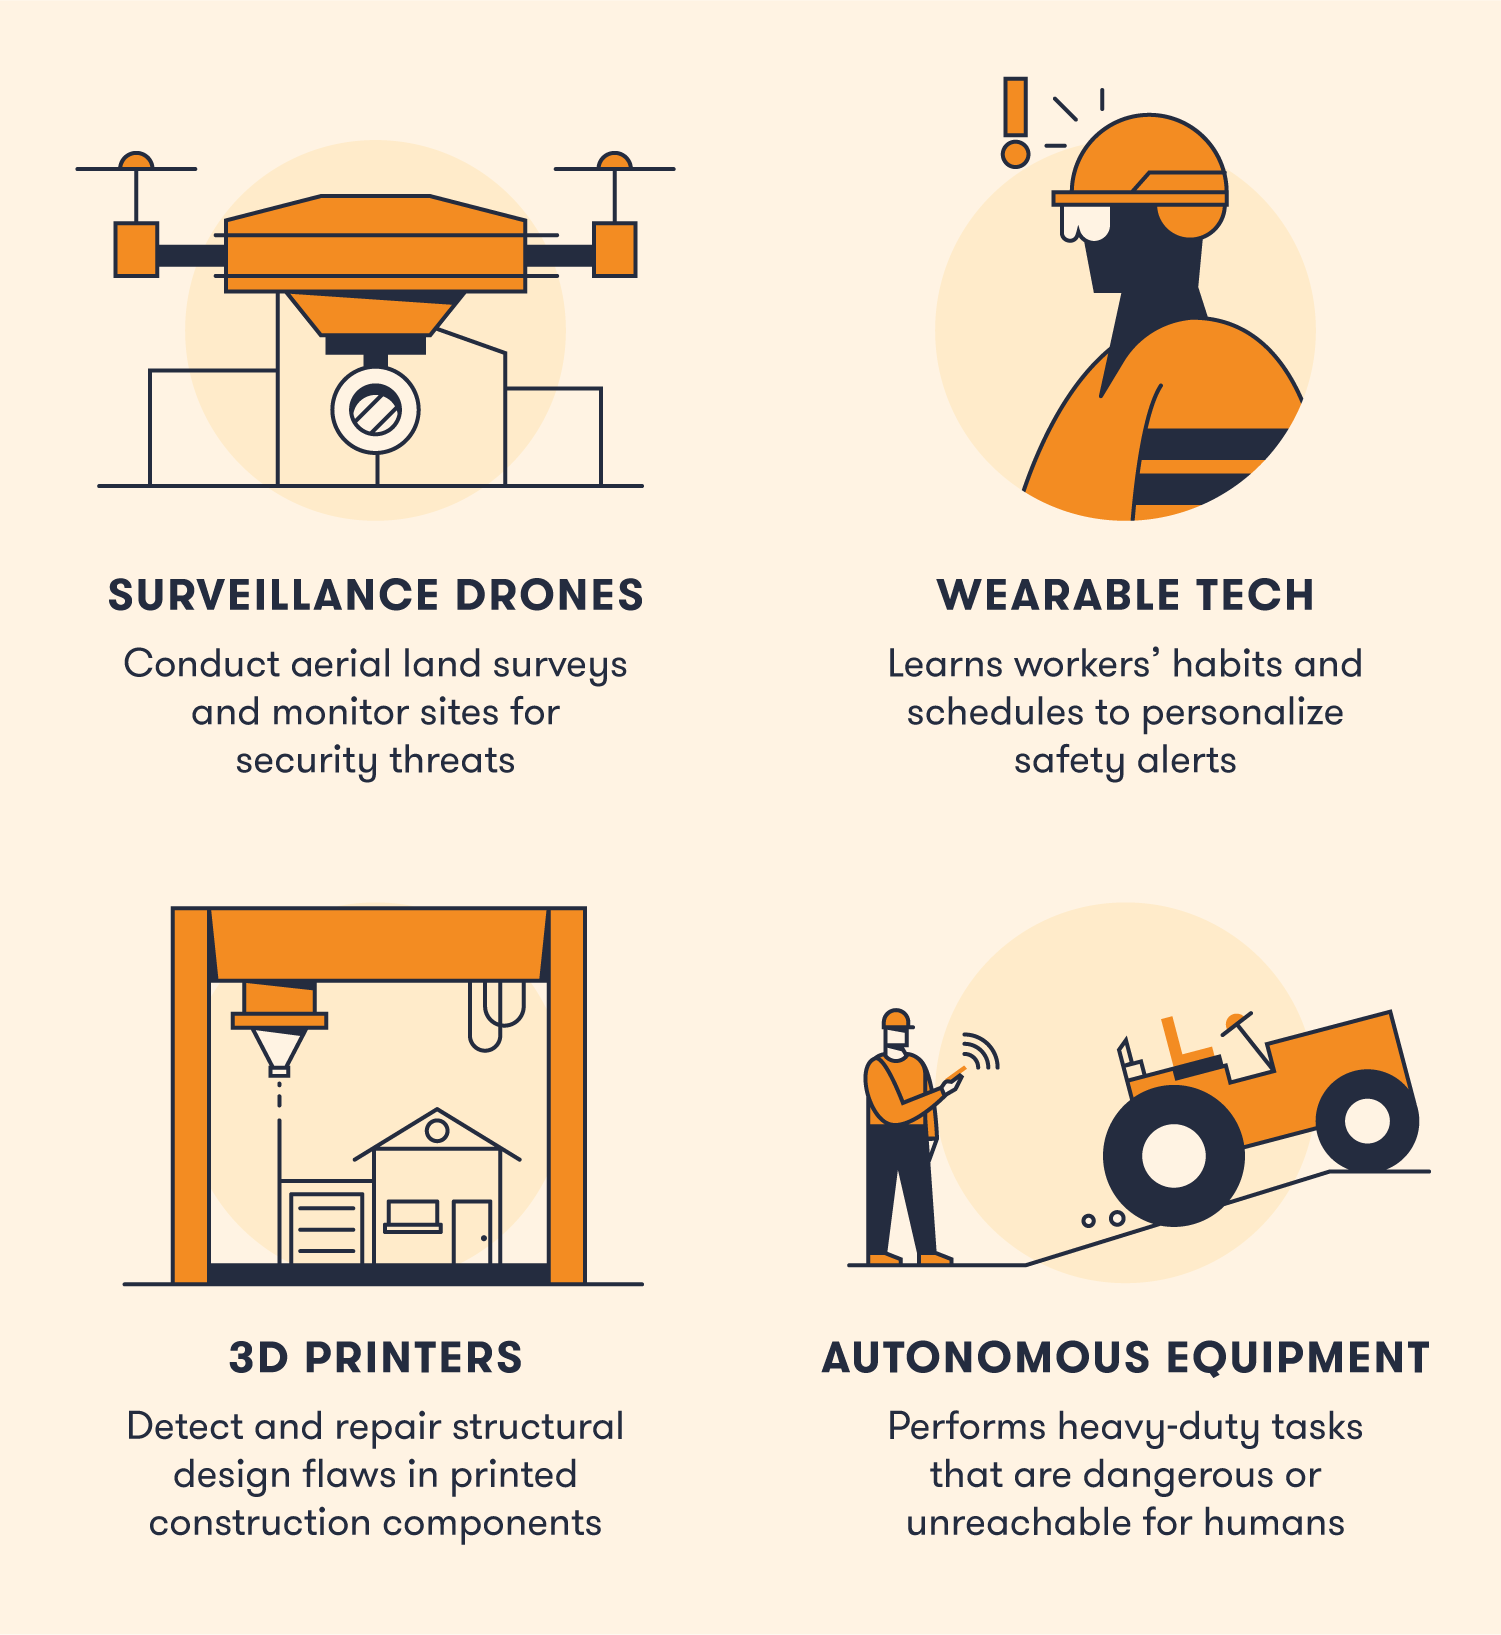 AI can be used in drones, wearables, 3D printers and heavy equipment.